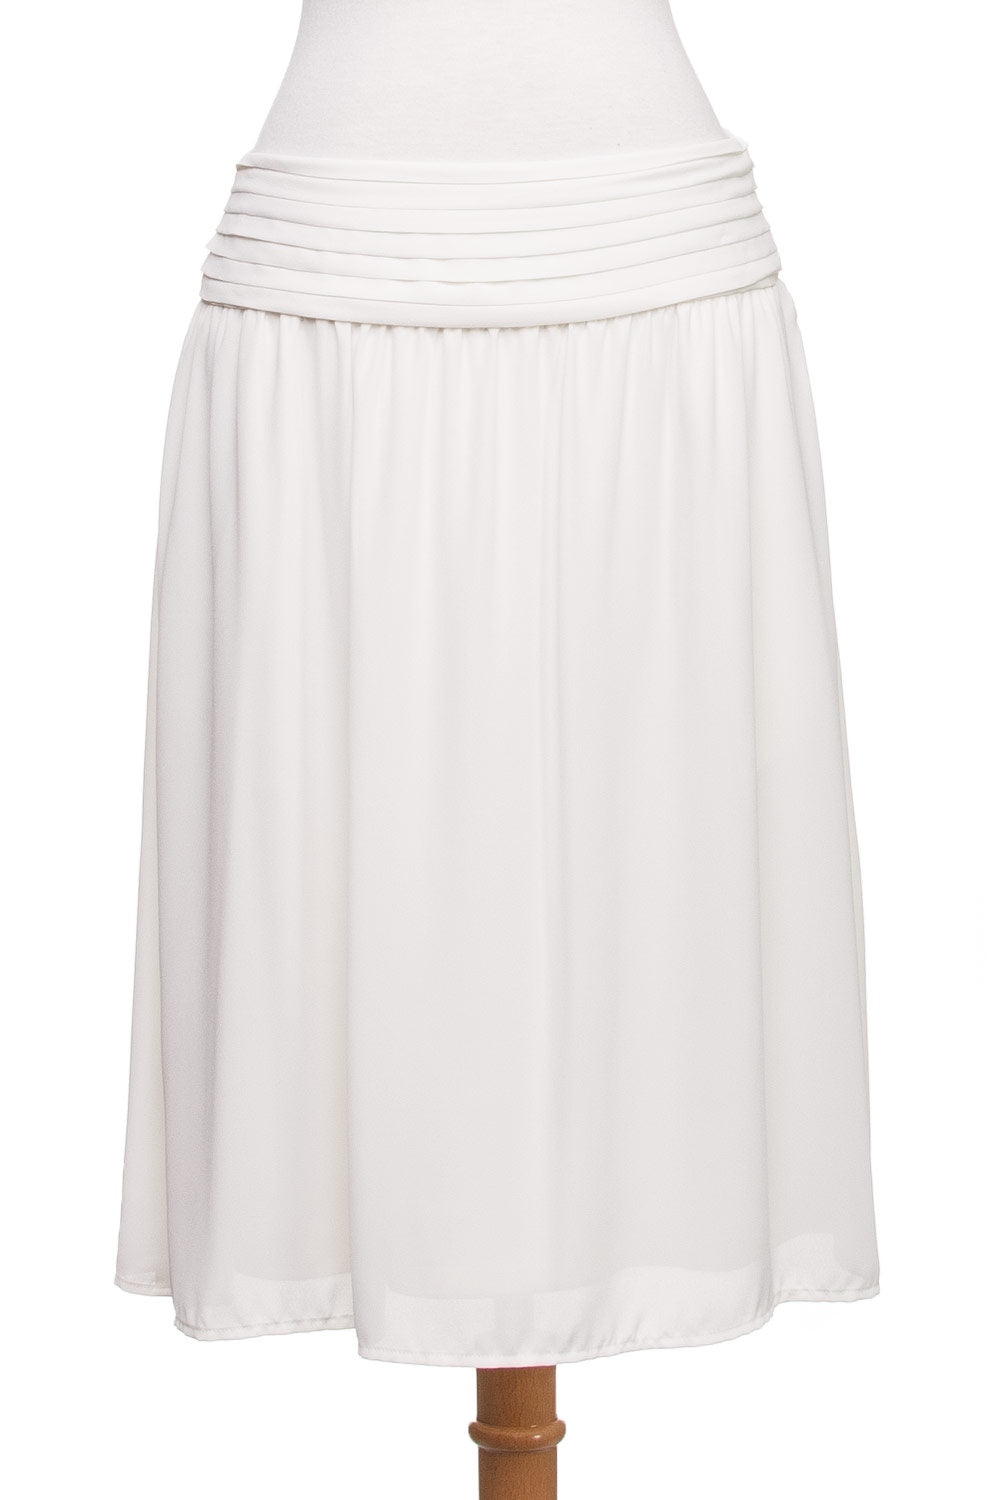 Type 1 Neat Pleat Skirt